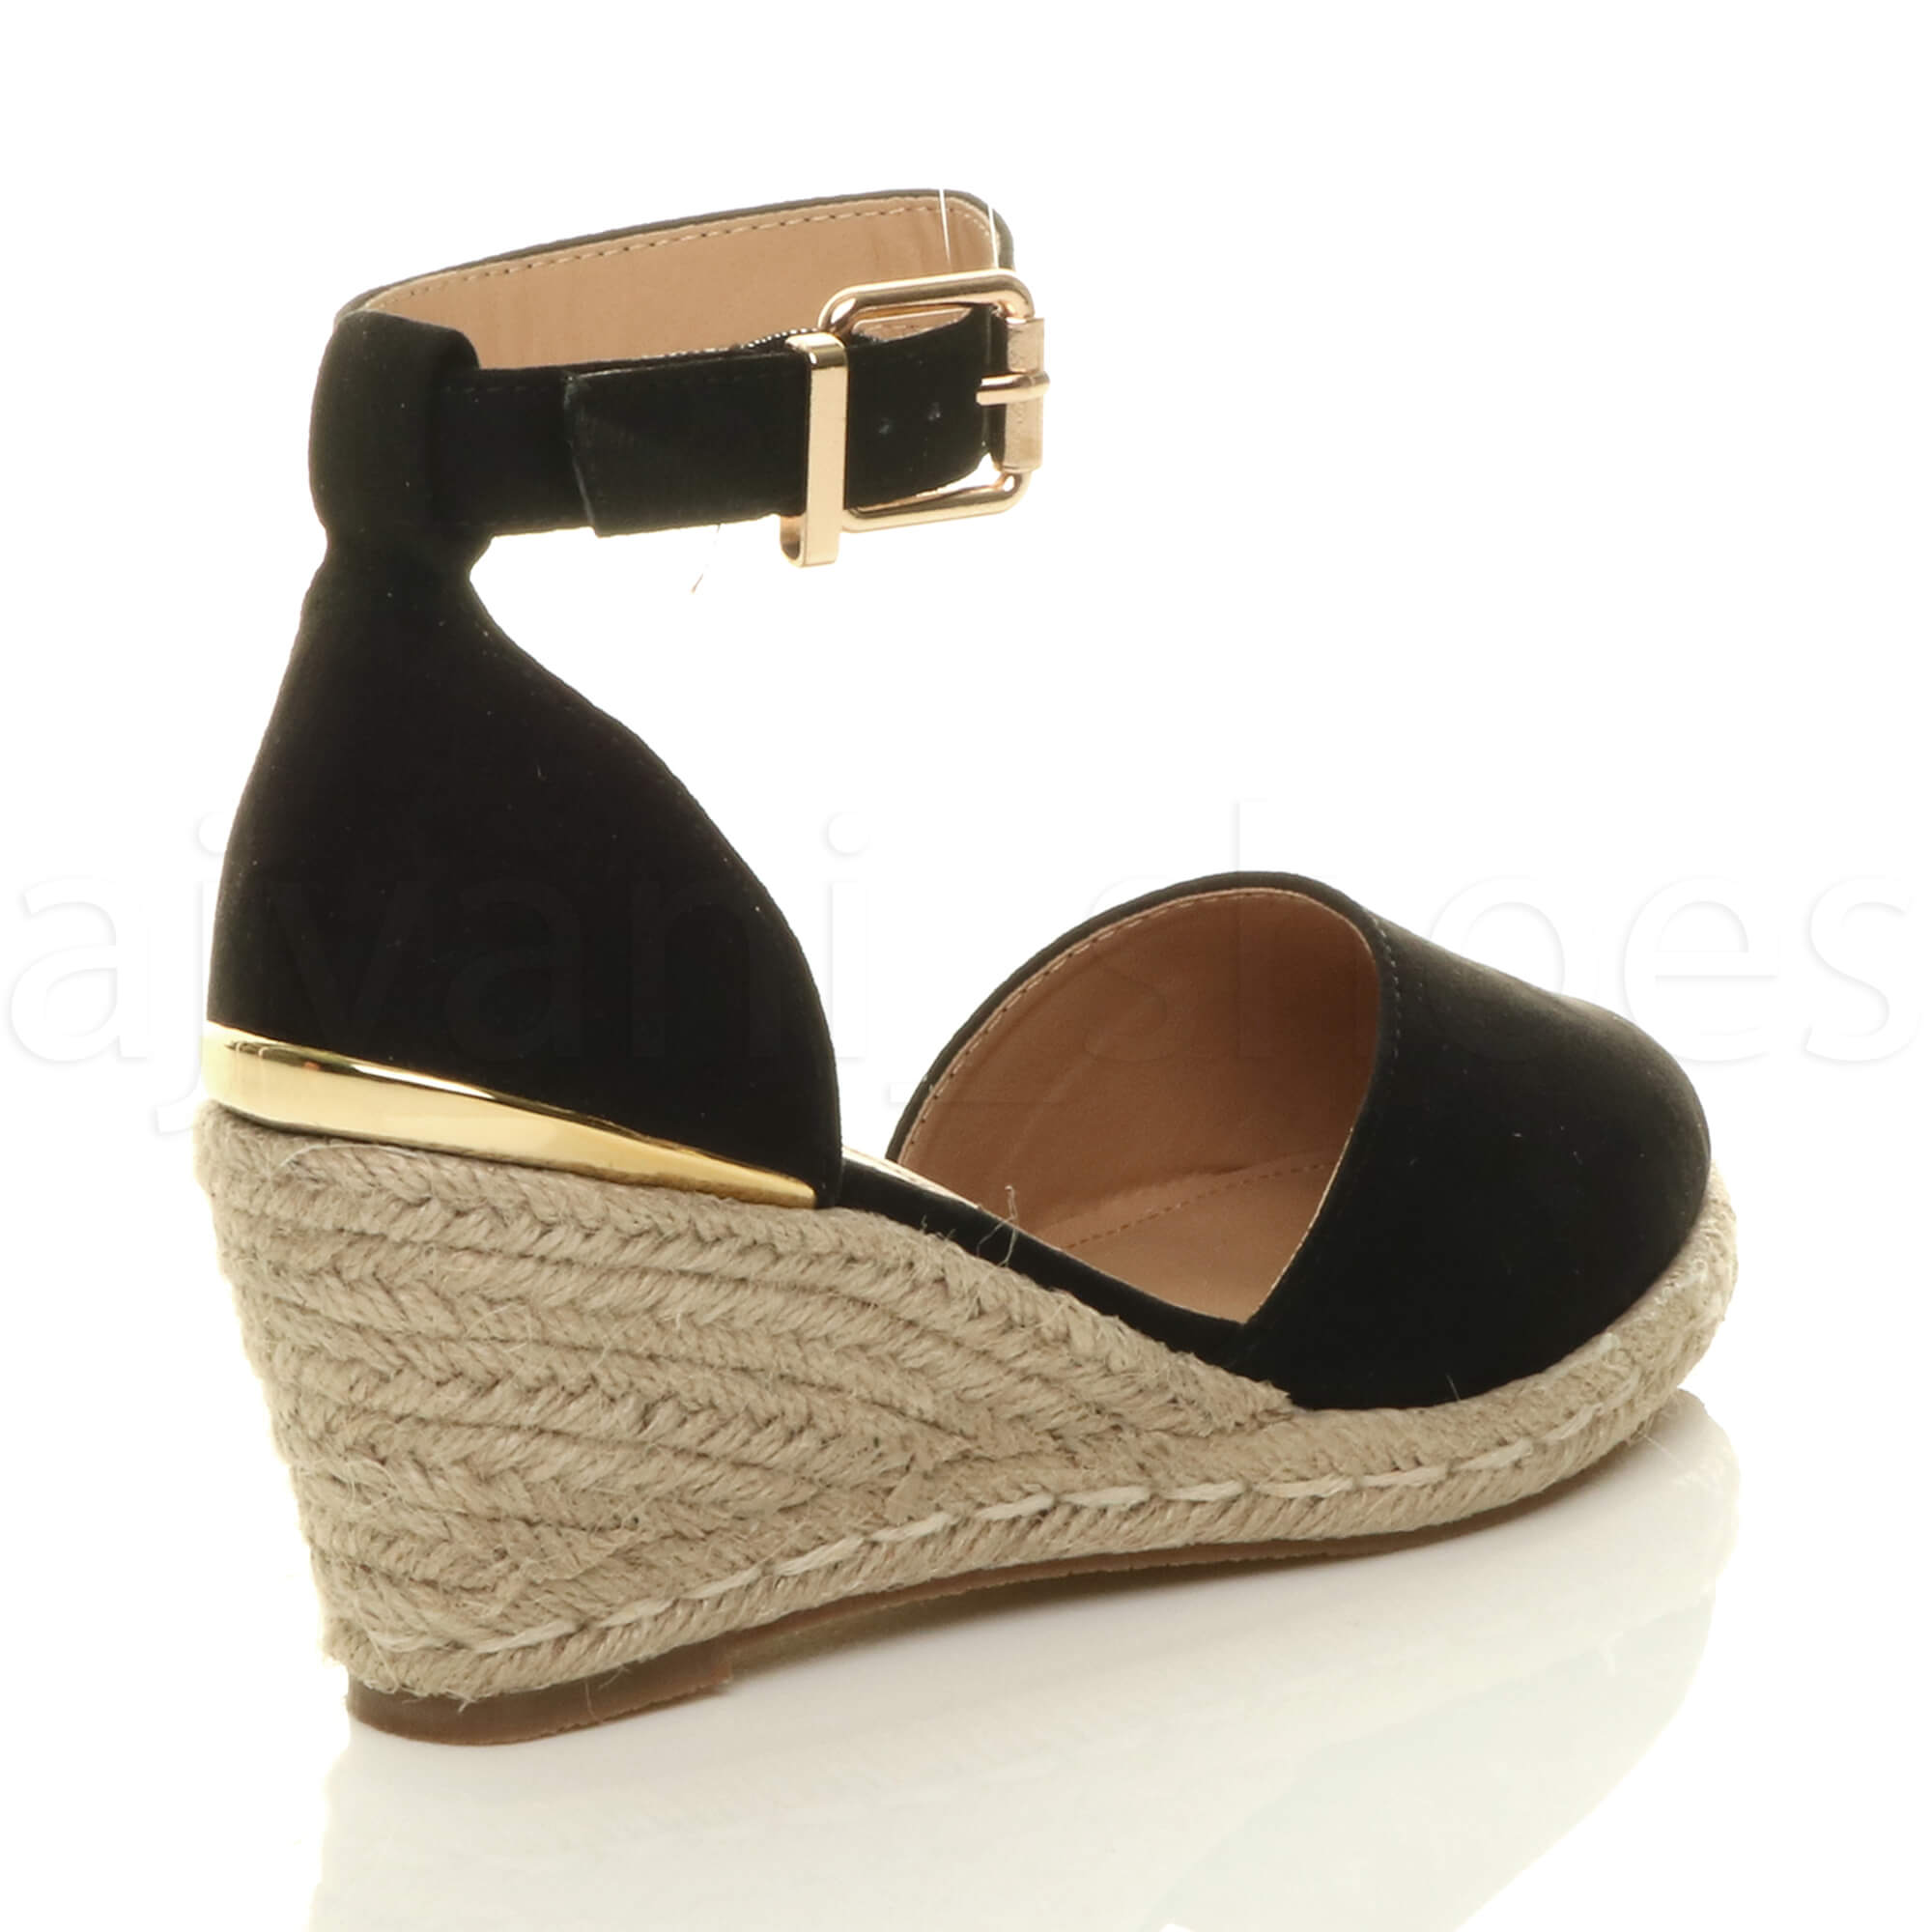 f5b2e0520db Details about WOMENS LADIES MID WEDGE HEEL BUCKLE UP ANKLE STRAP ESPADRILLE  SANDALS SIZE